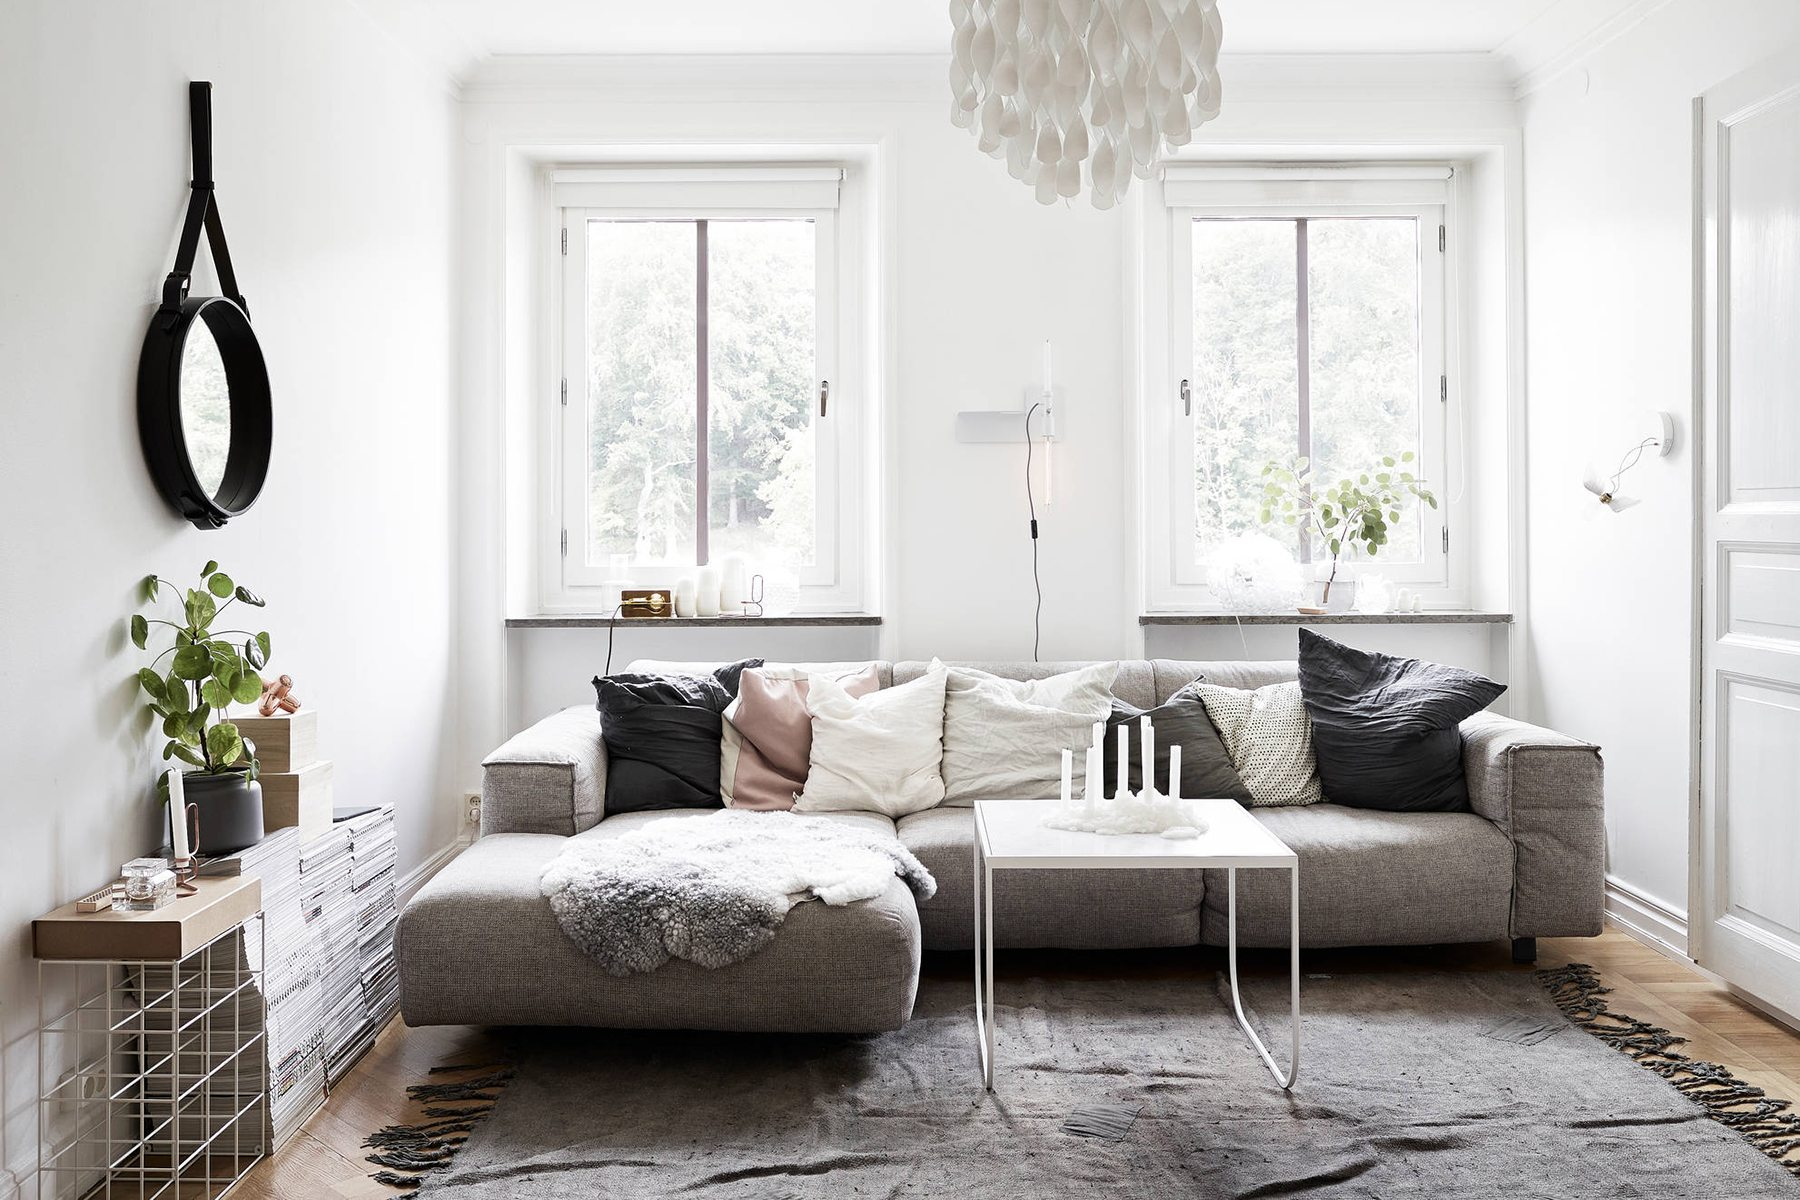 How To Get A Scandinavian Interior Design Look In Your Home